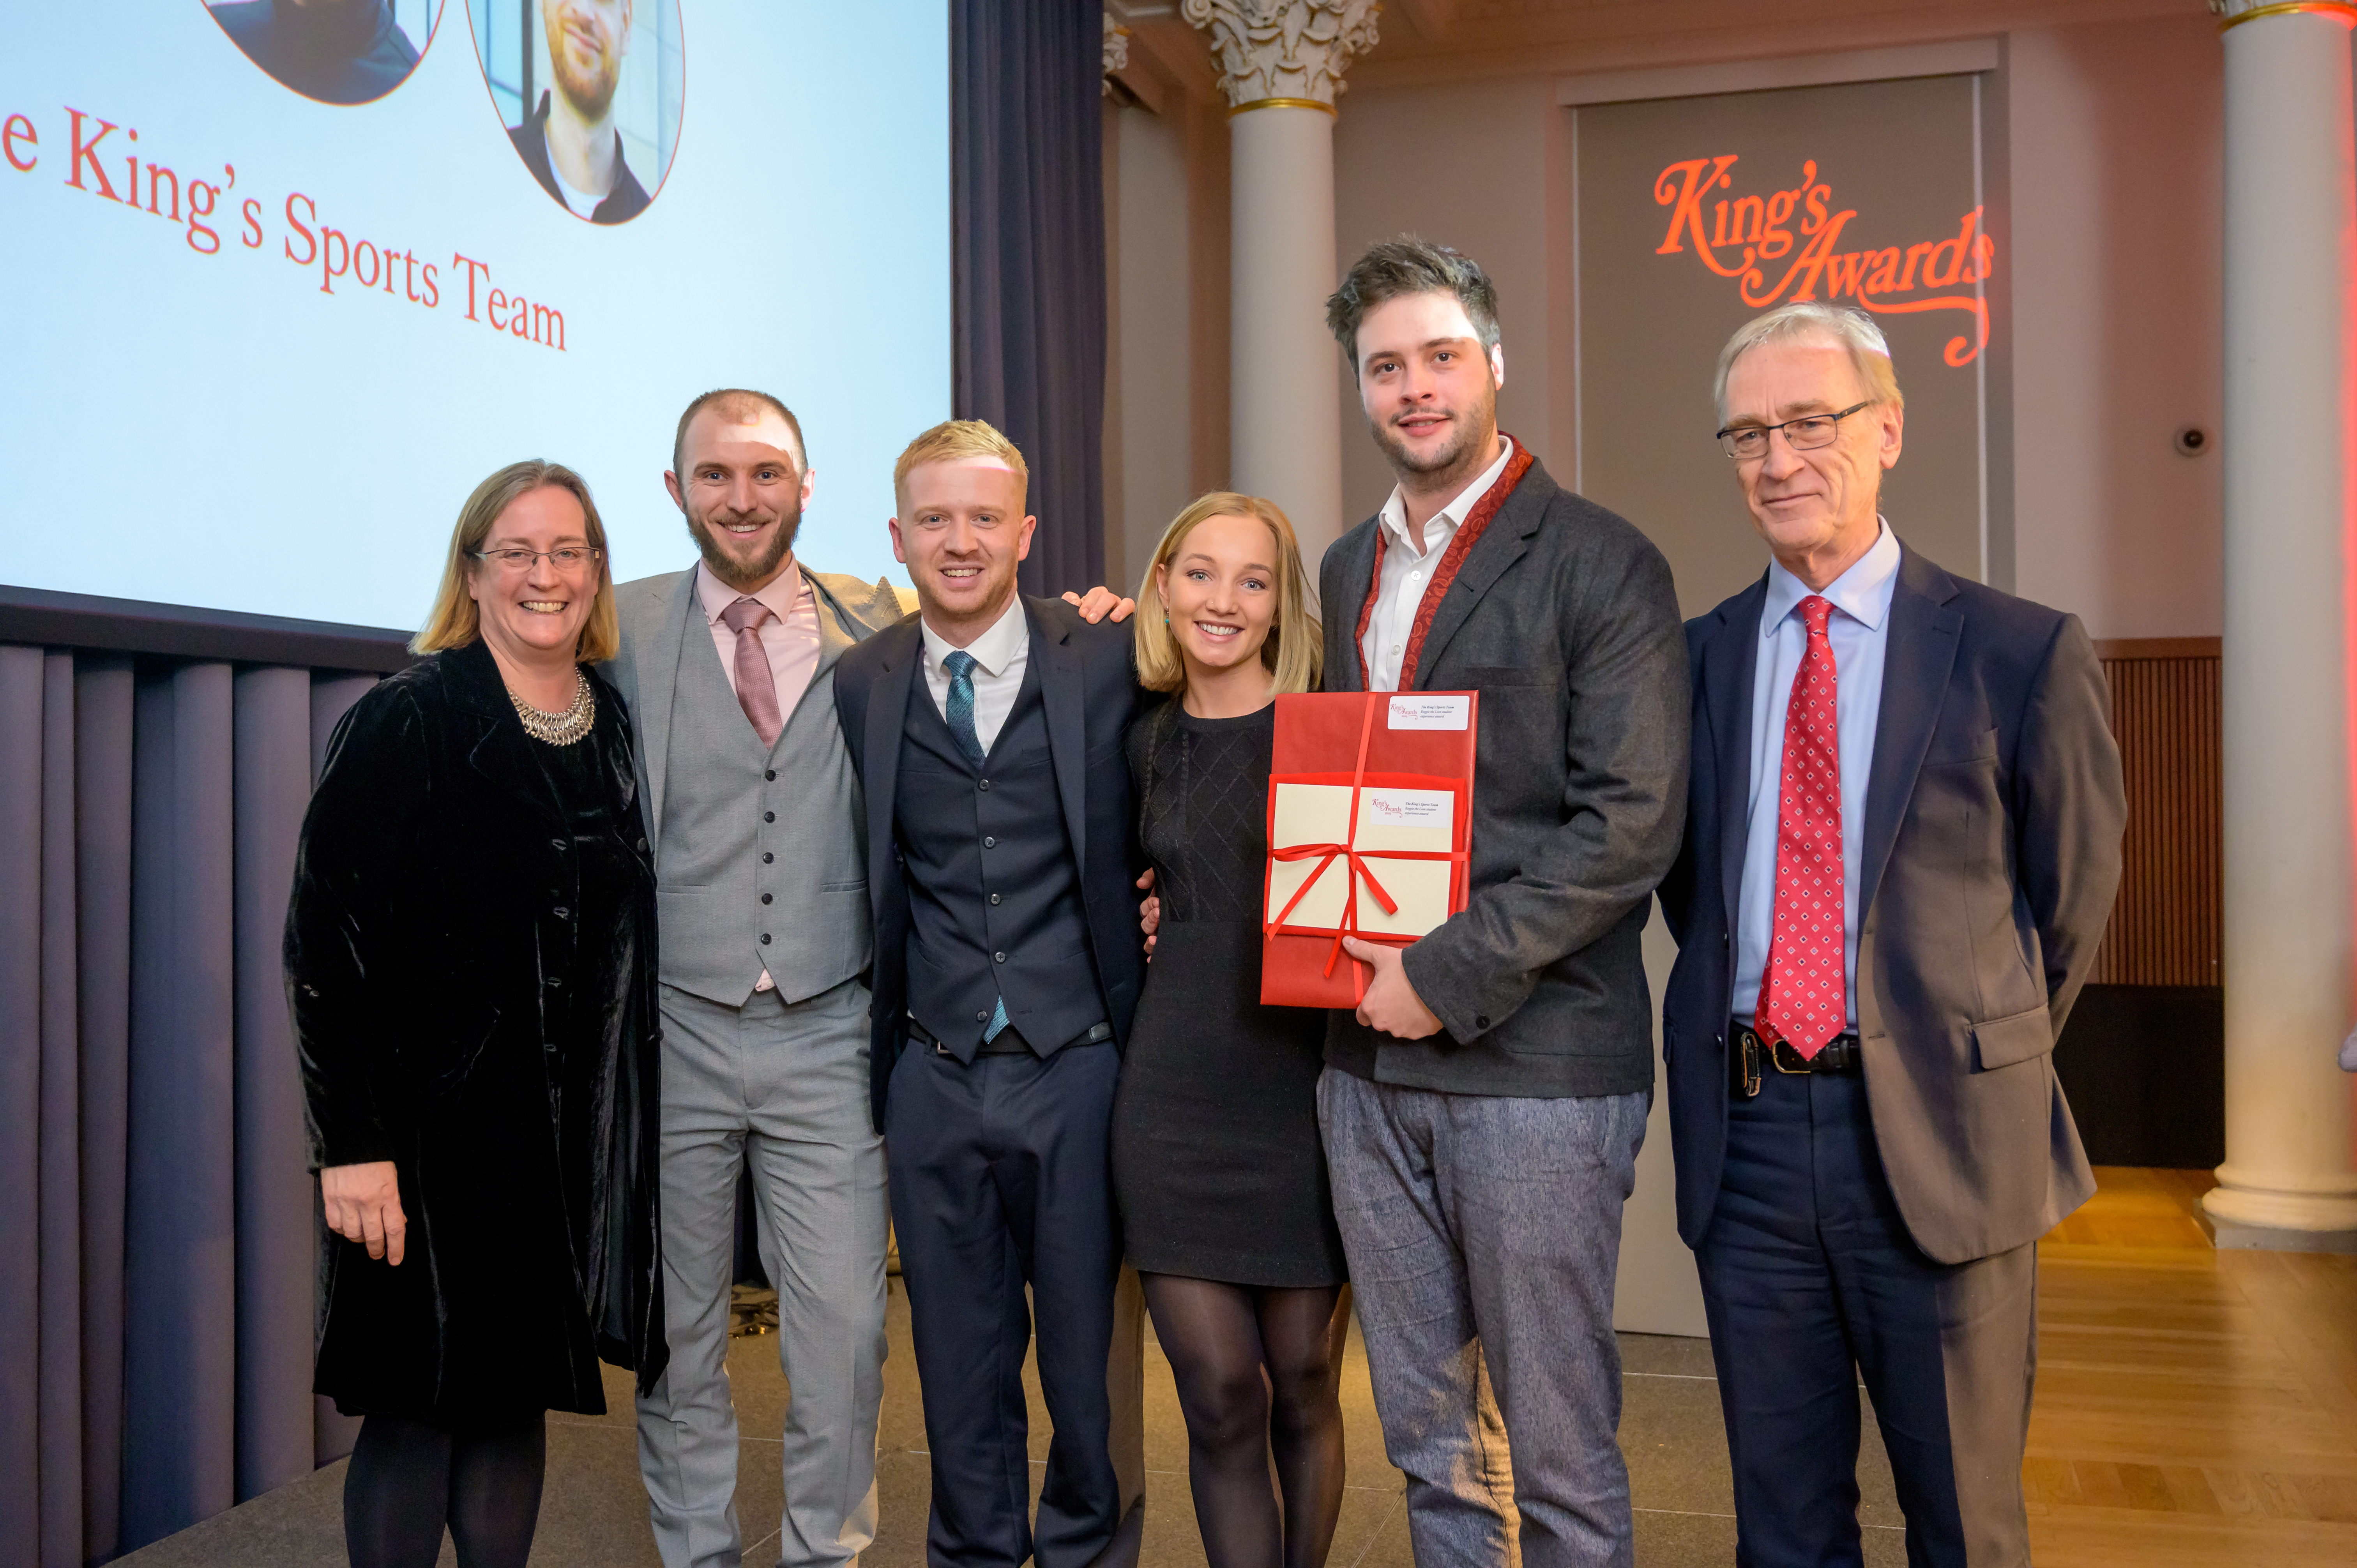 Kings Awards 2019-138 - King's Sport Team